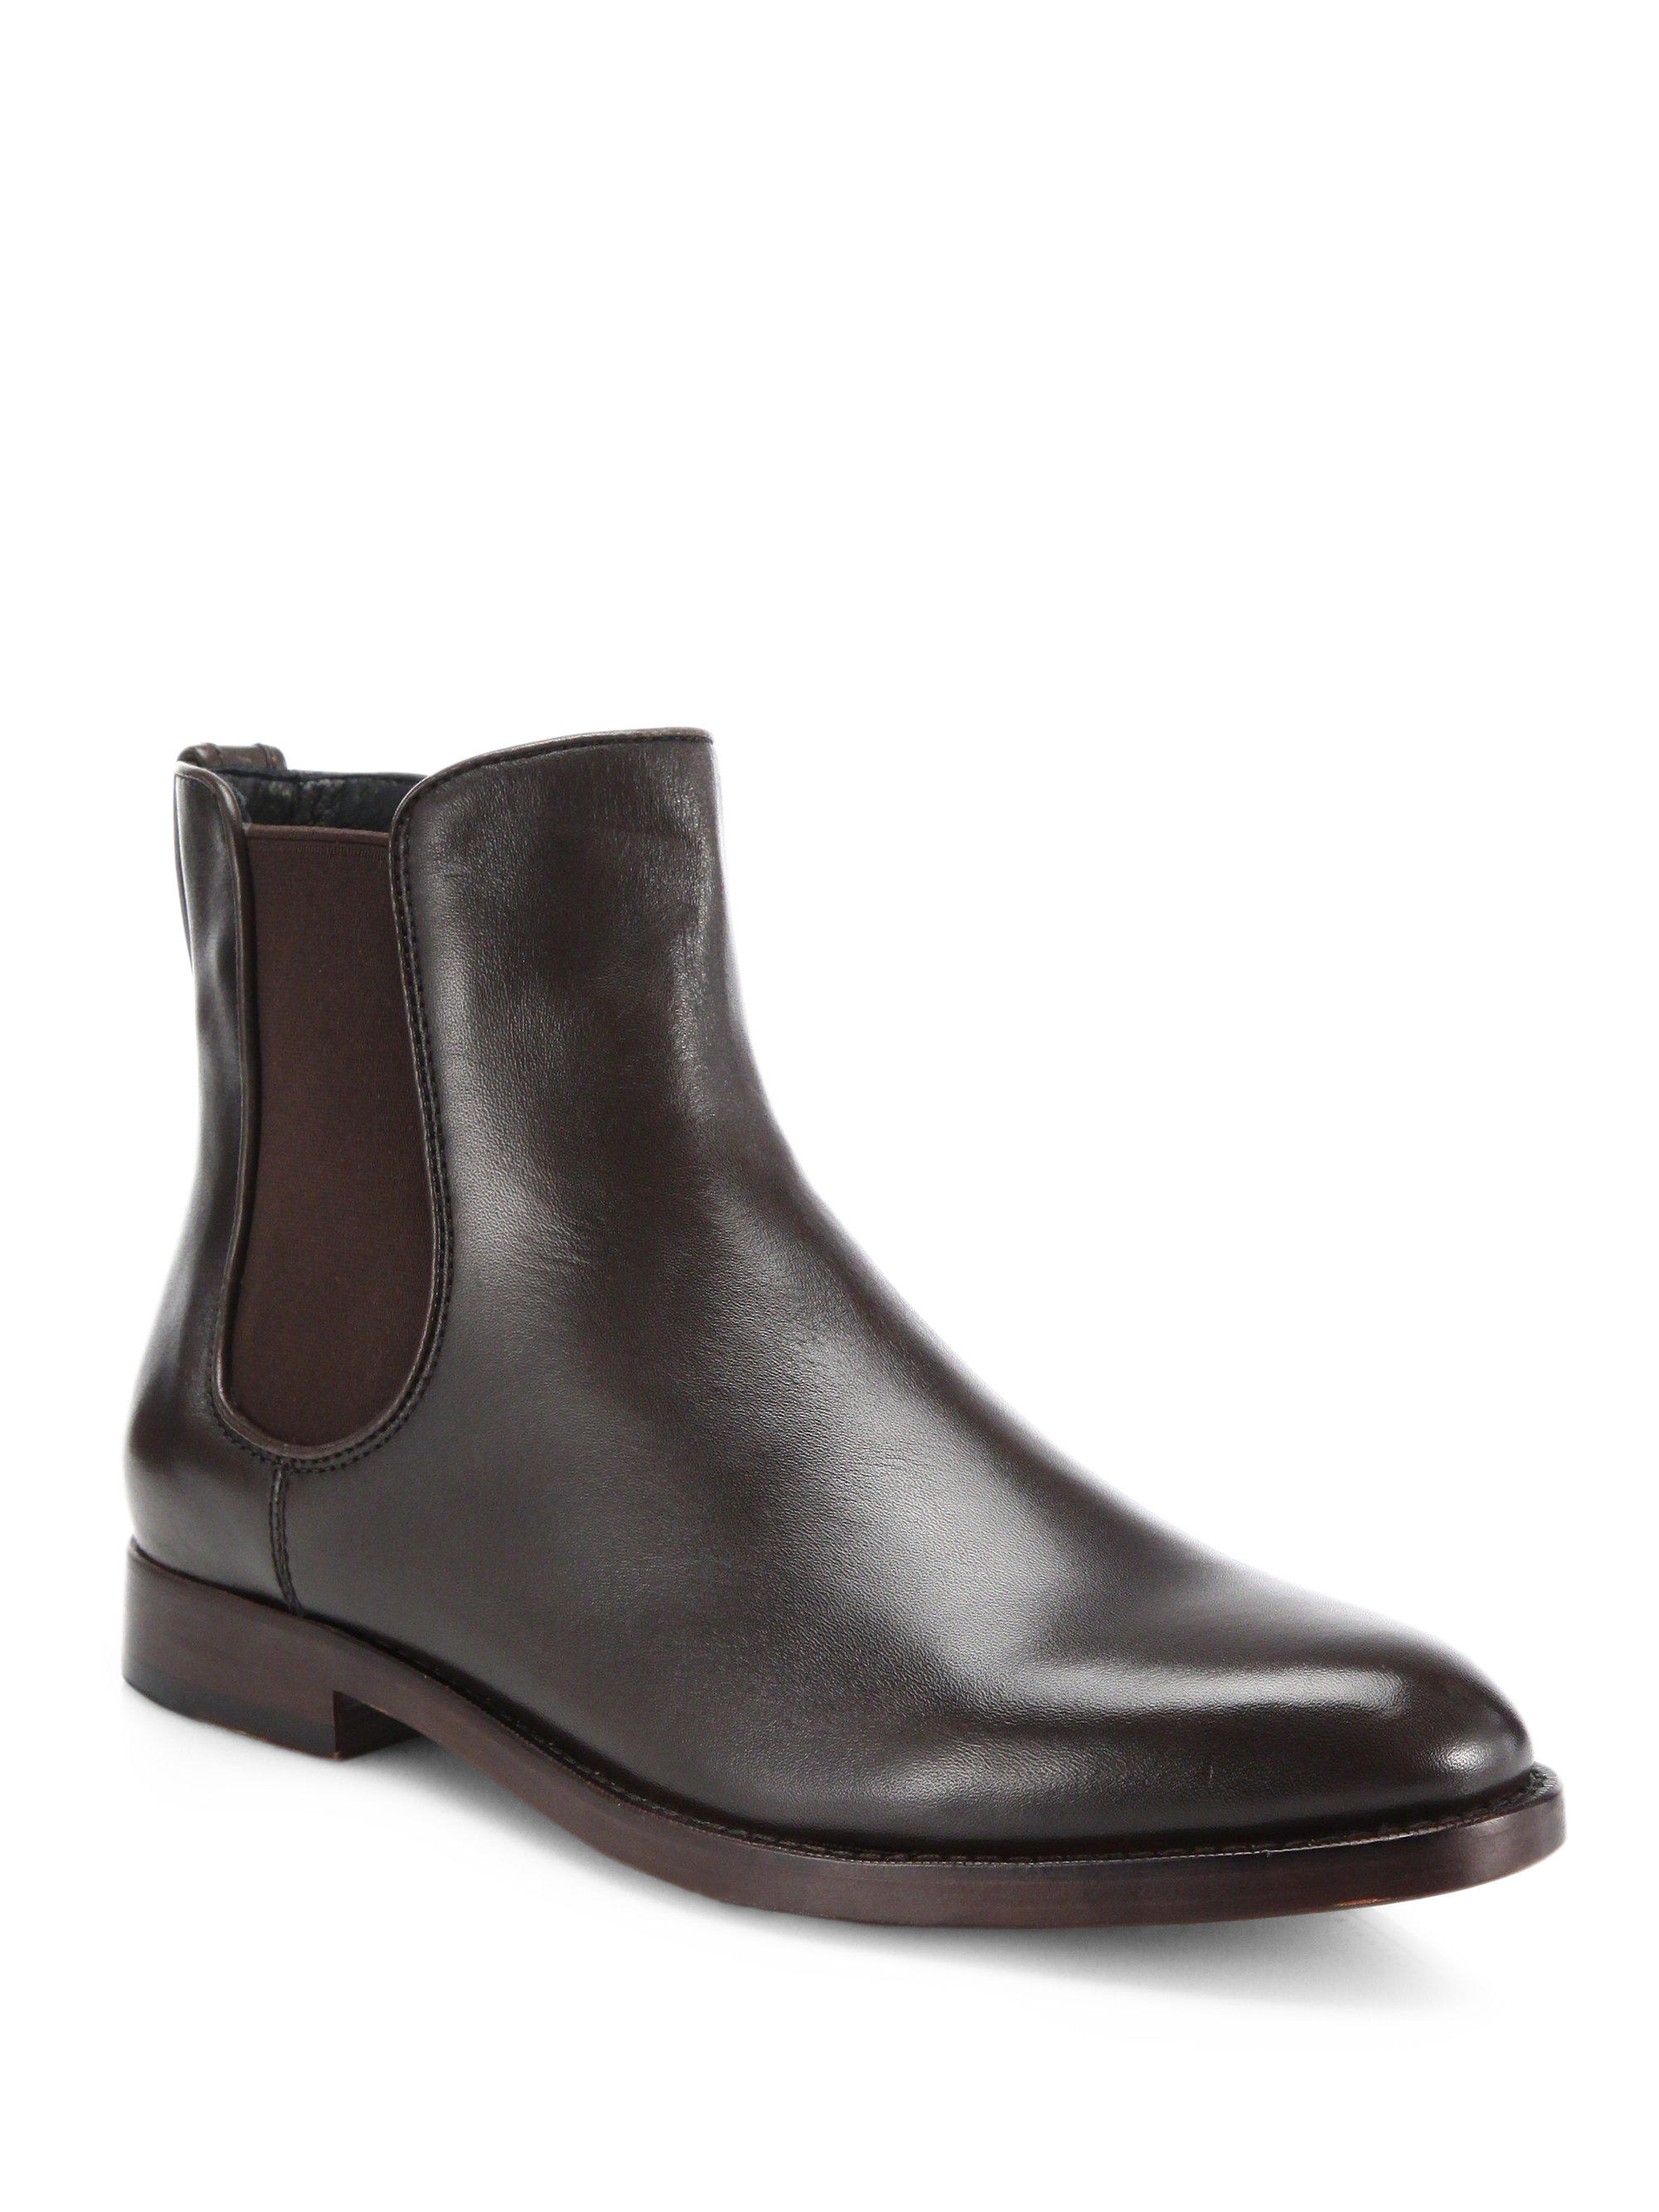 Coach Leather Chelsea Booties sale very cheap buy cheap fast delivery otG89H